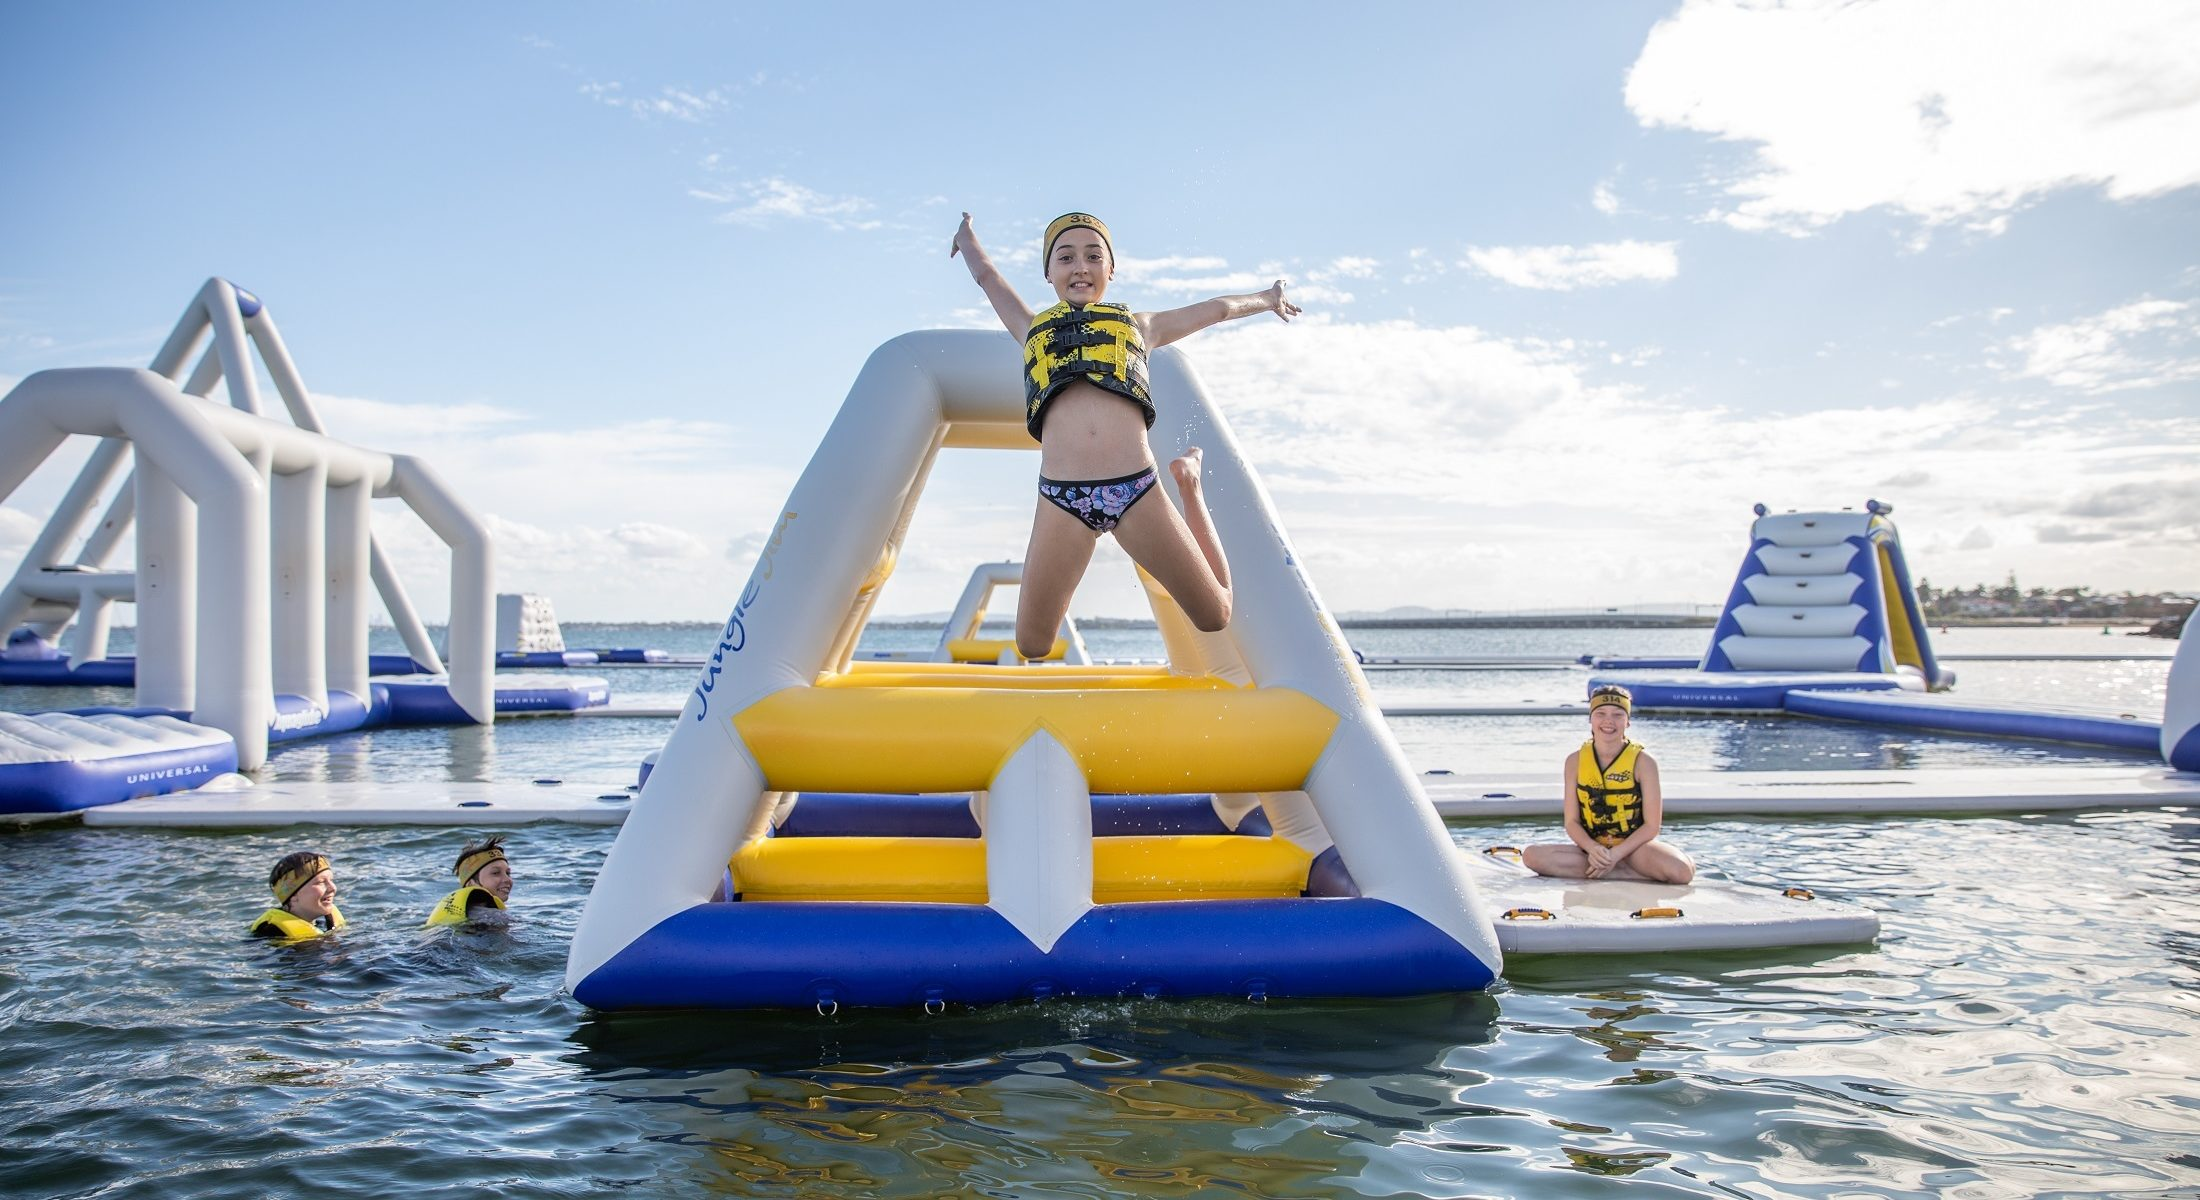 Aqua Splash Girl Jumping Redcliffe Moreton Bay Region Brisbane